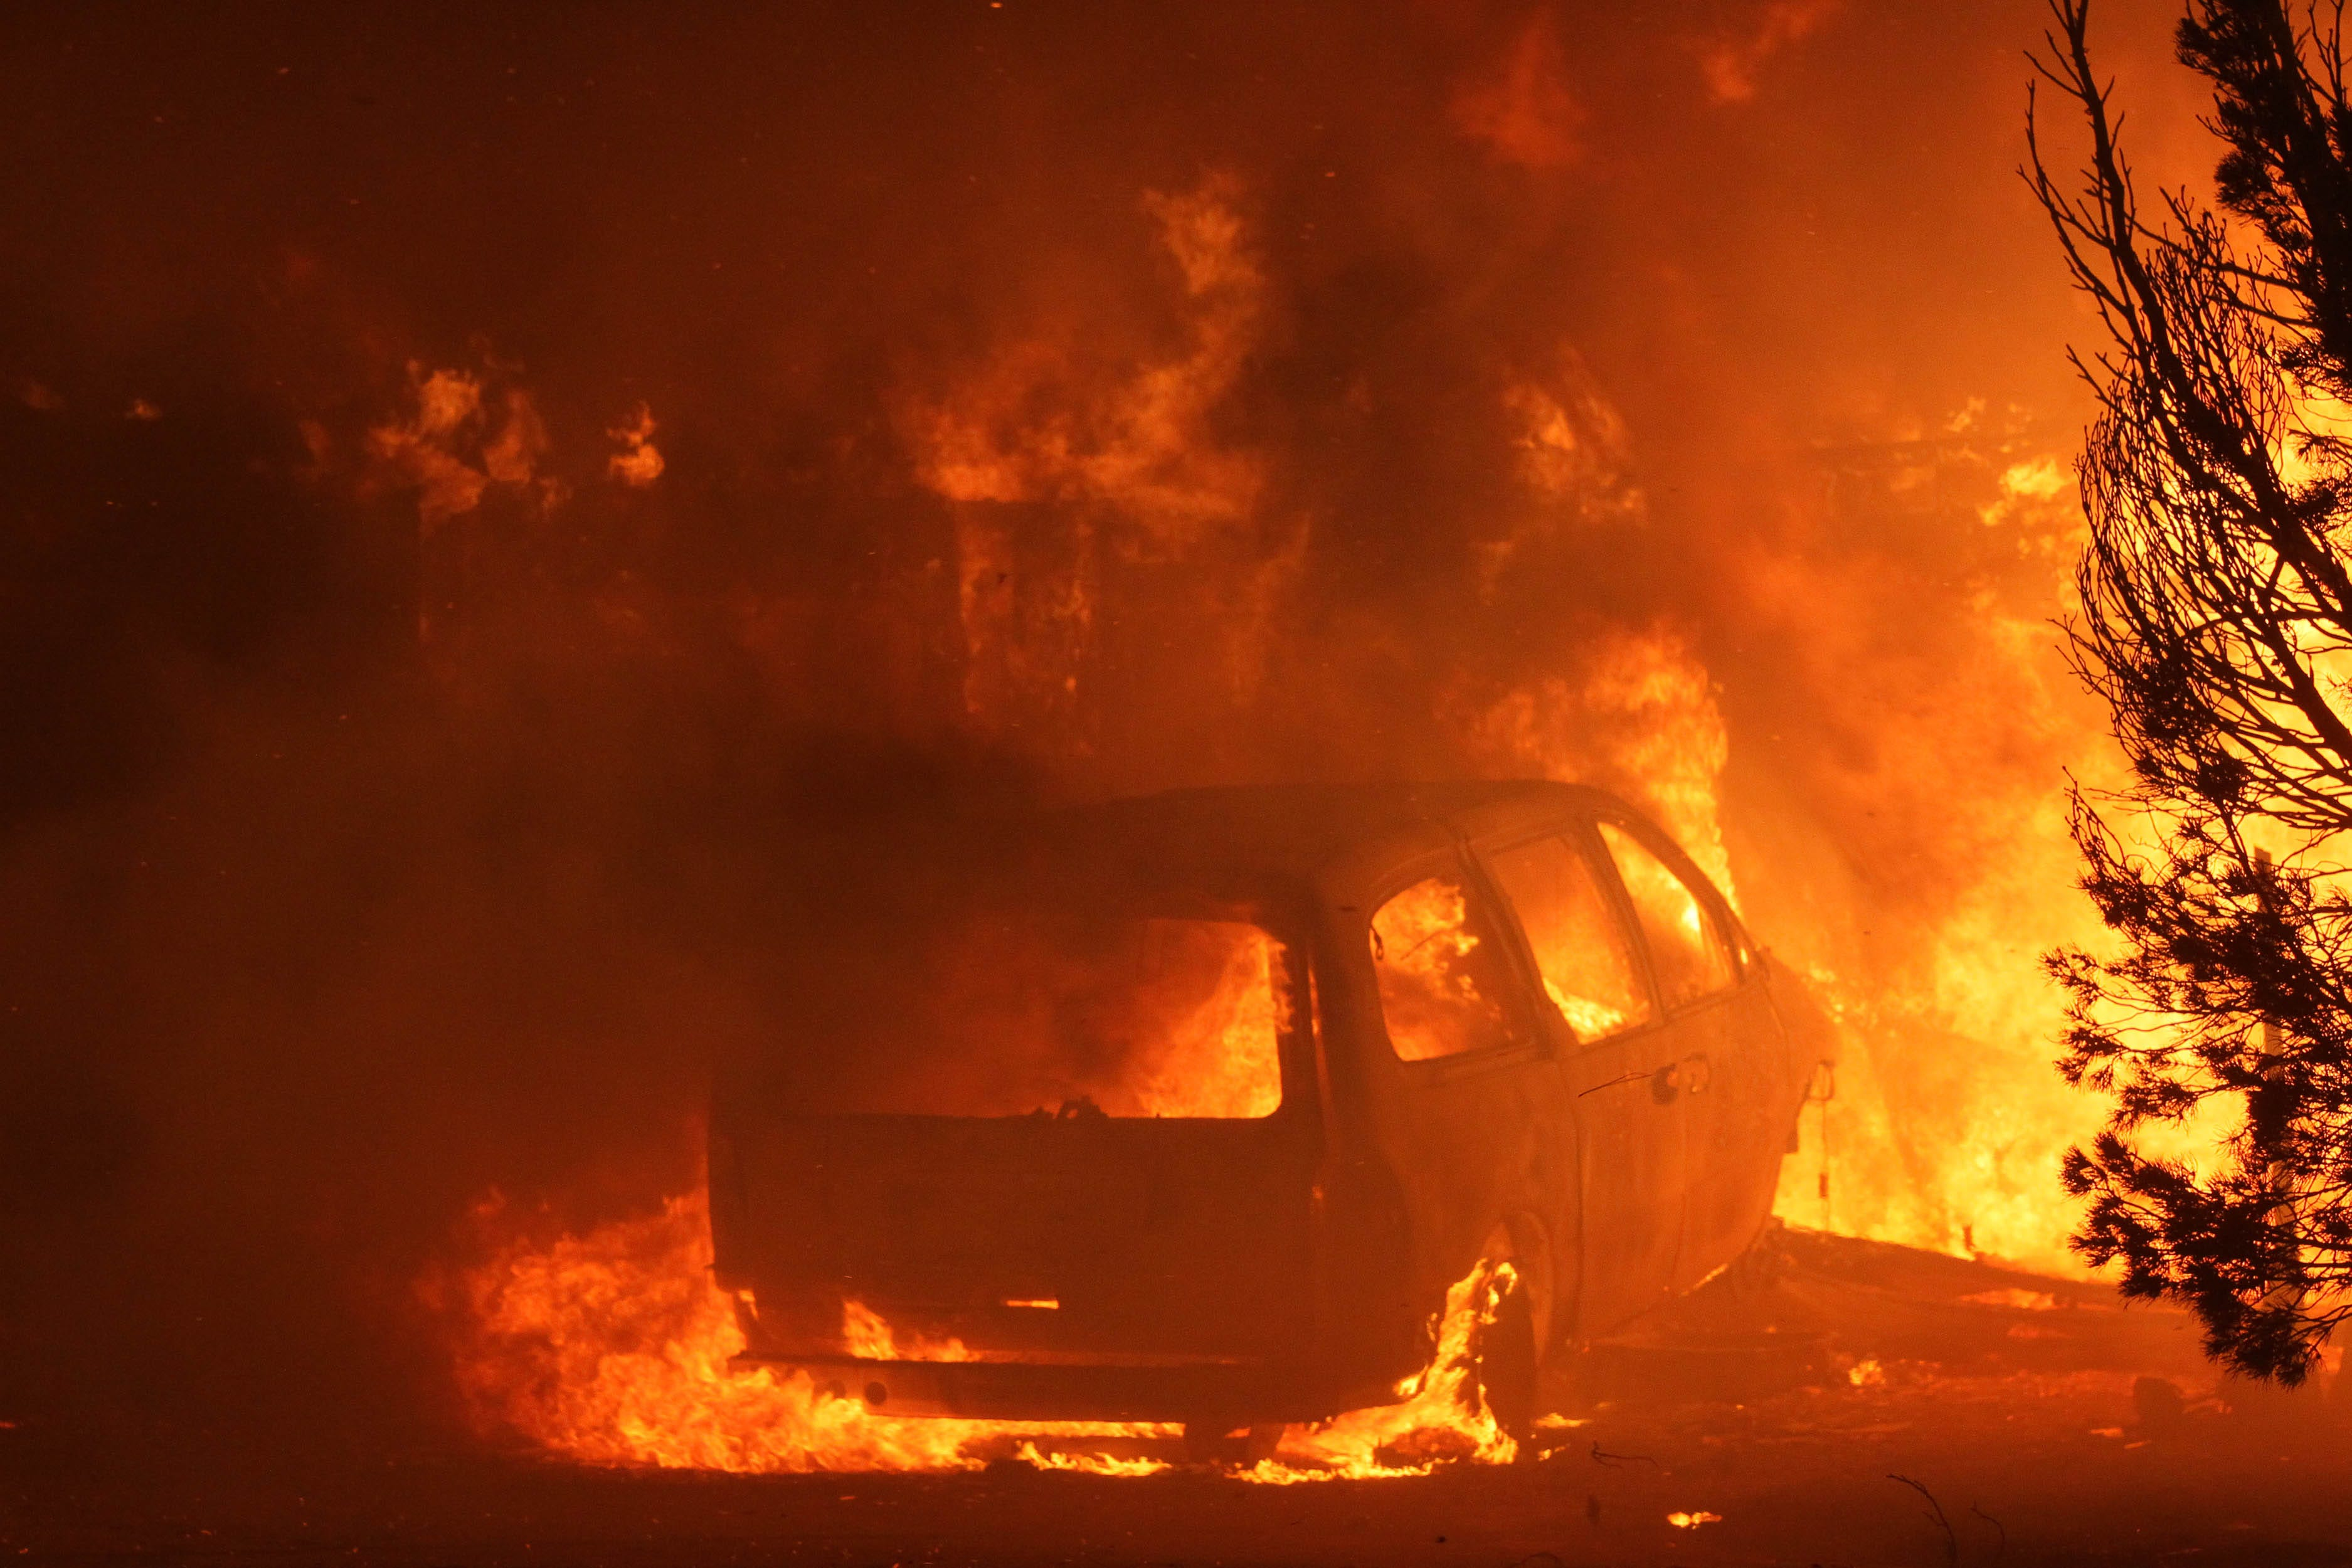 picture 8,000-Acre California Wildfire Drives Mass Evacuation